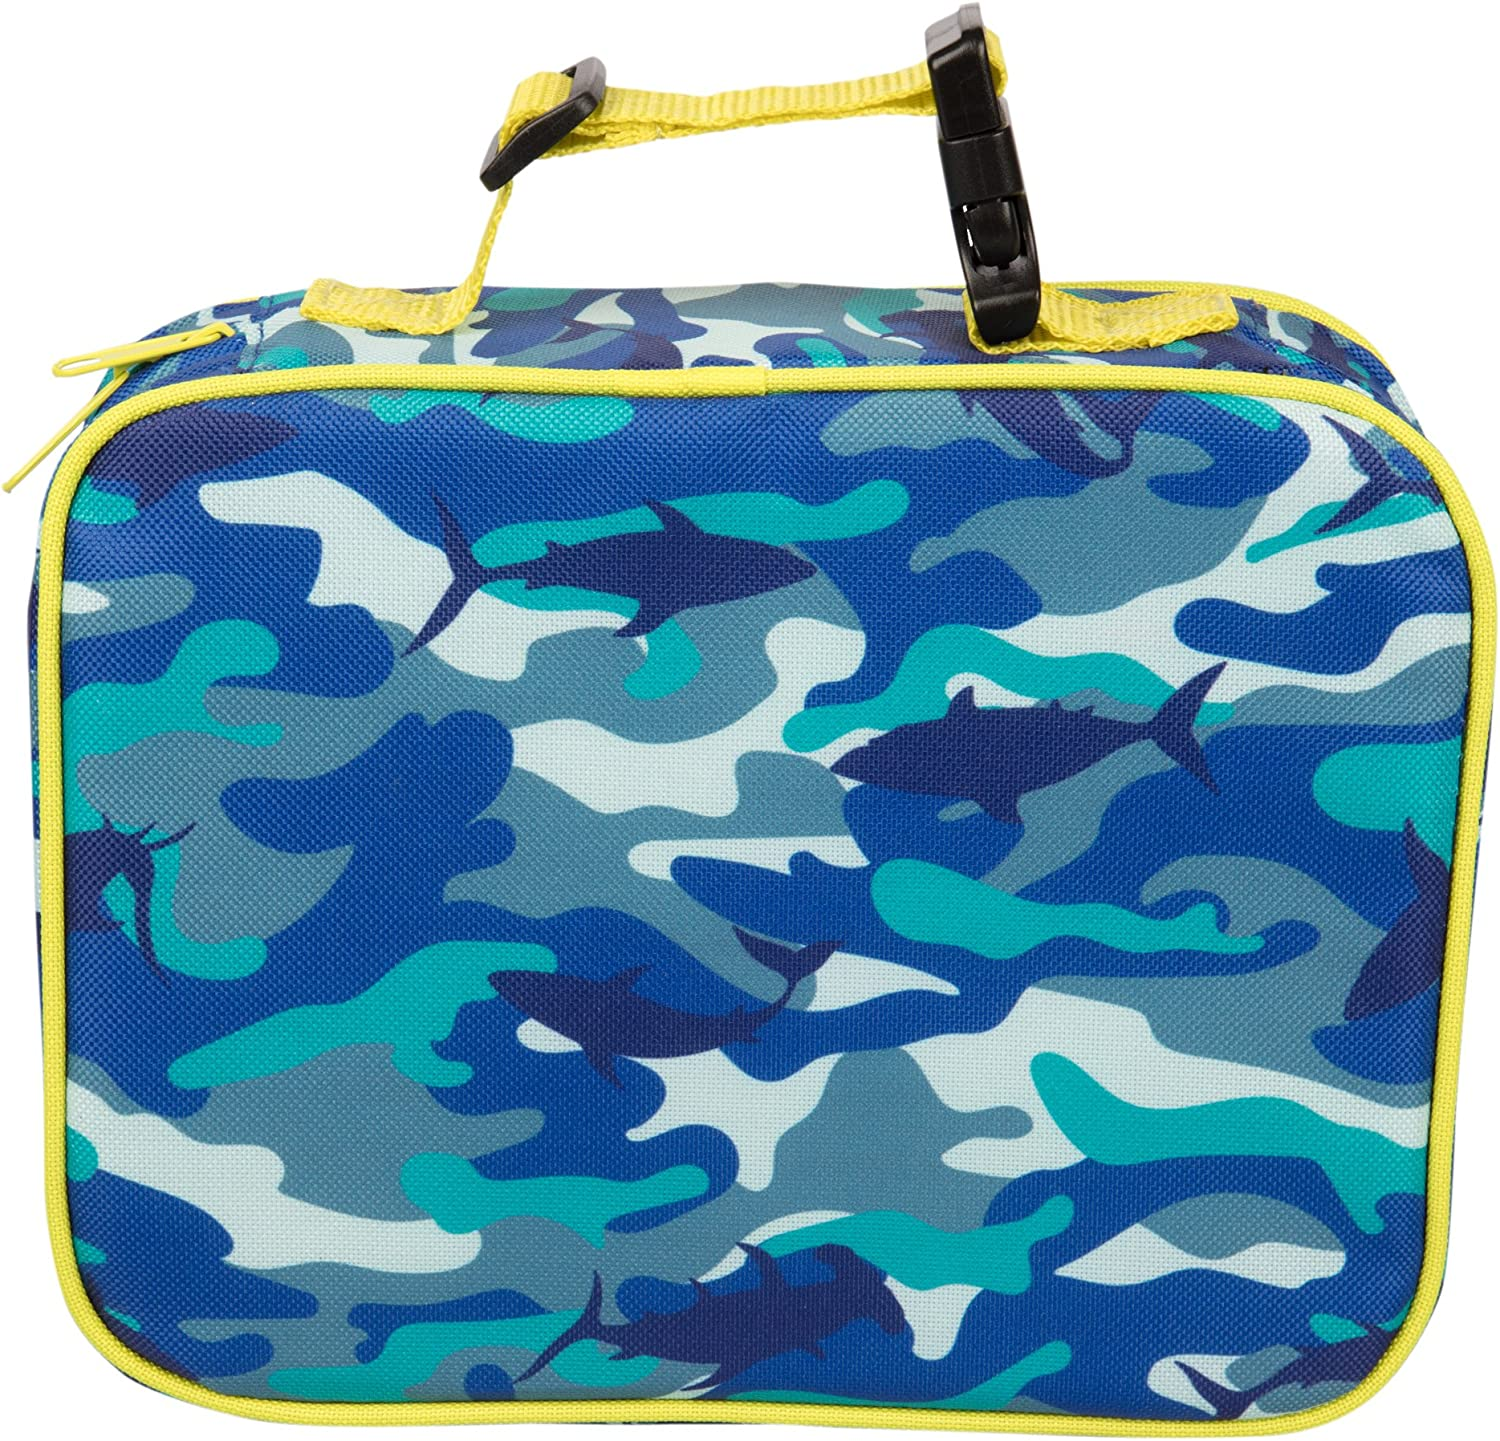 5 ☆ popular Insulated Durable Lunch Box Finally popular brand Sleeve Reusable - Bag Secure